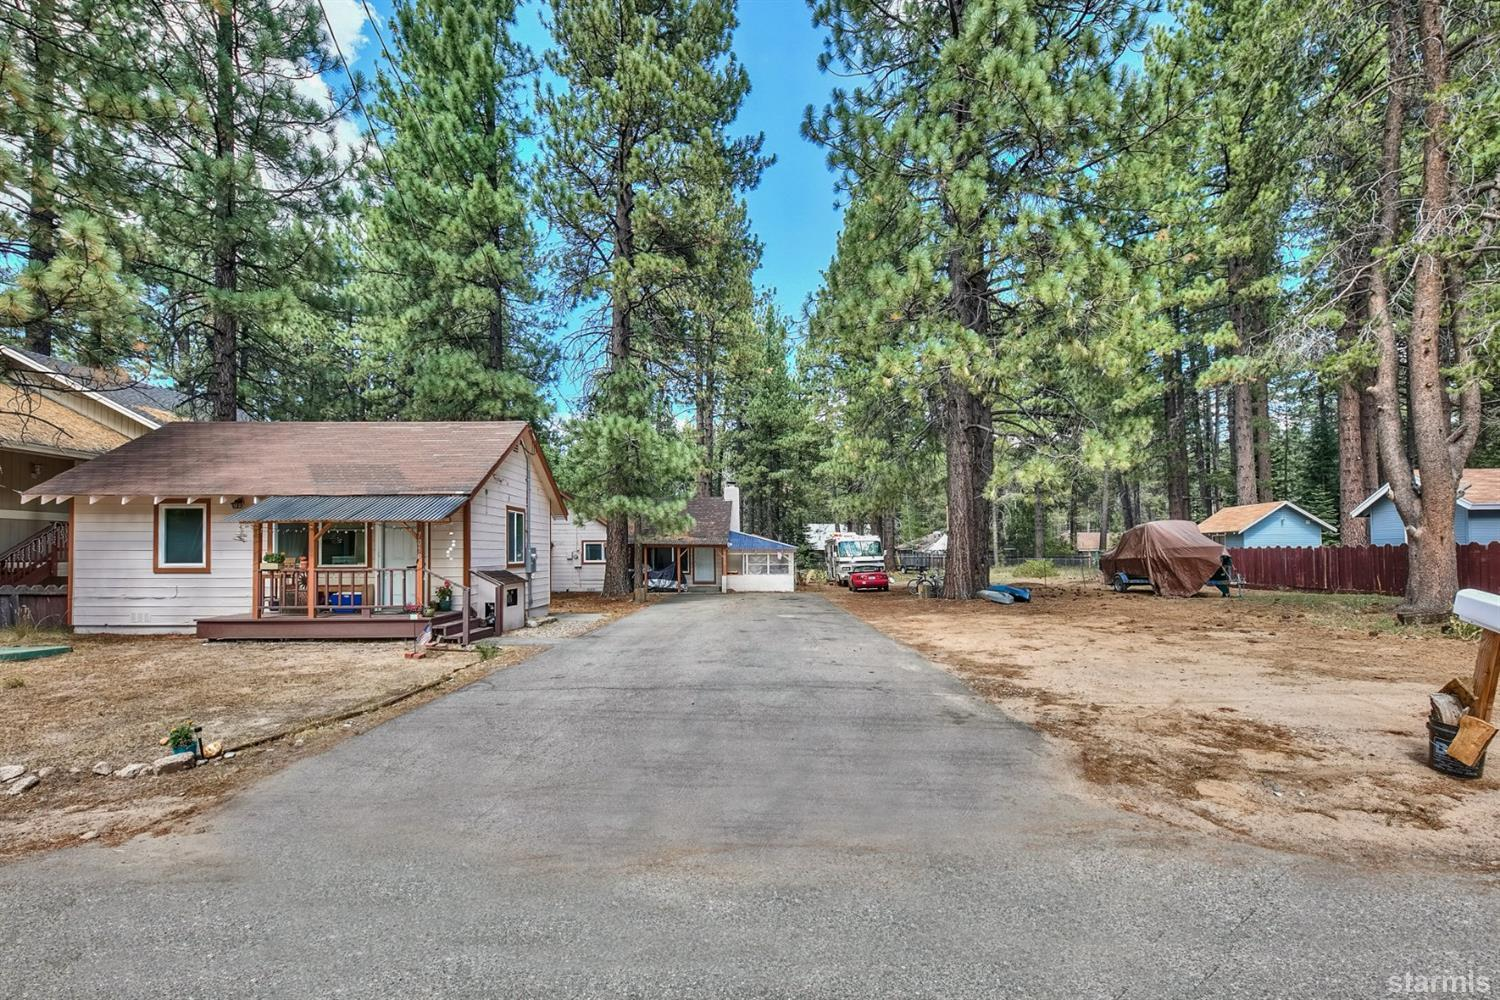 Image for 705 Eloise Avenue, South Lake Tahoe, CA 96150